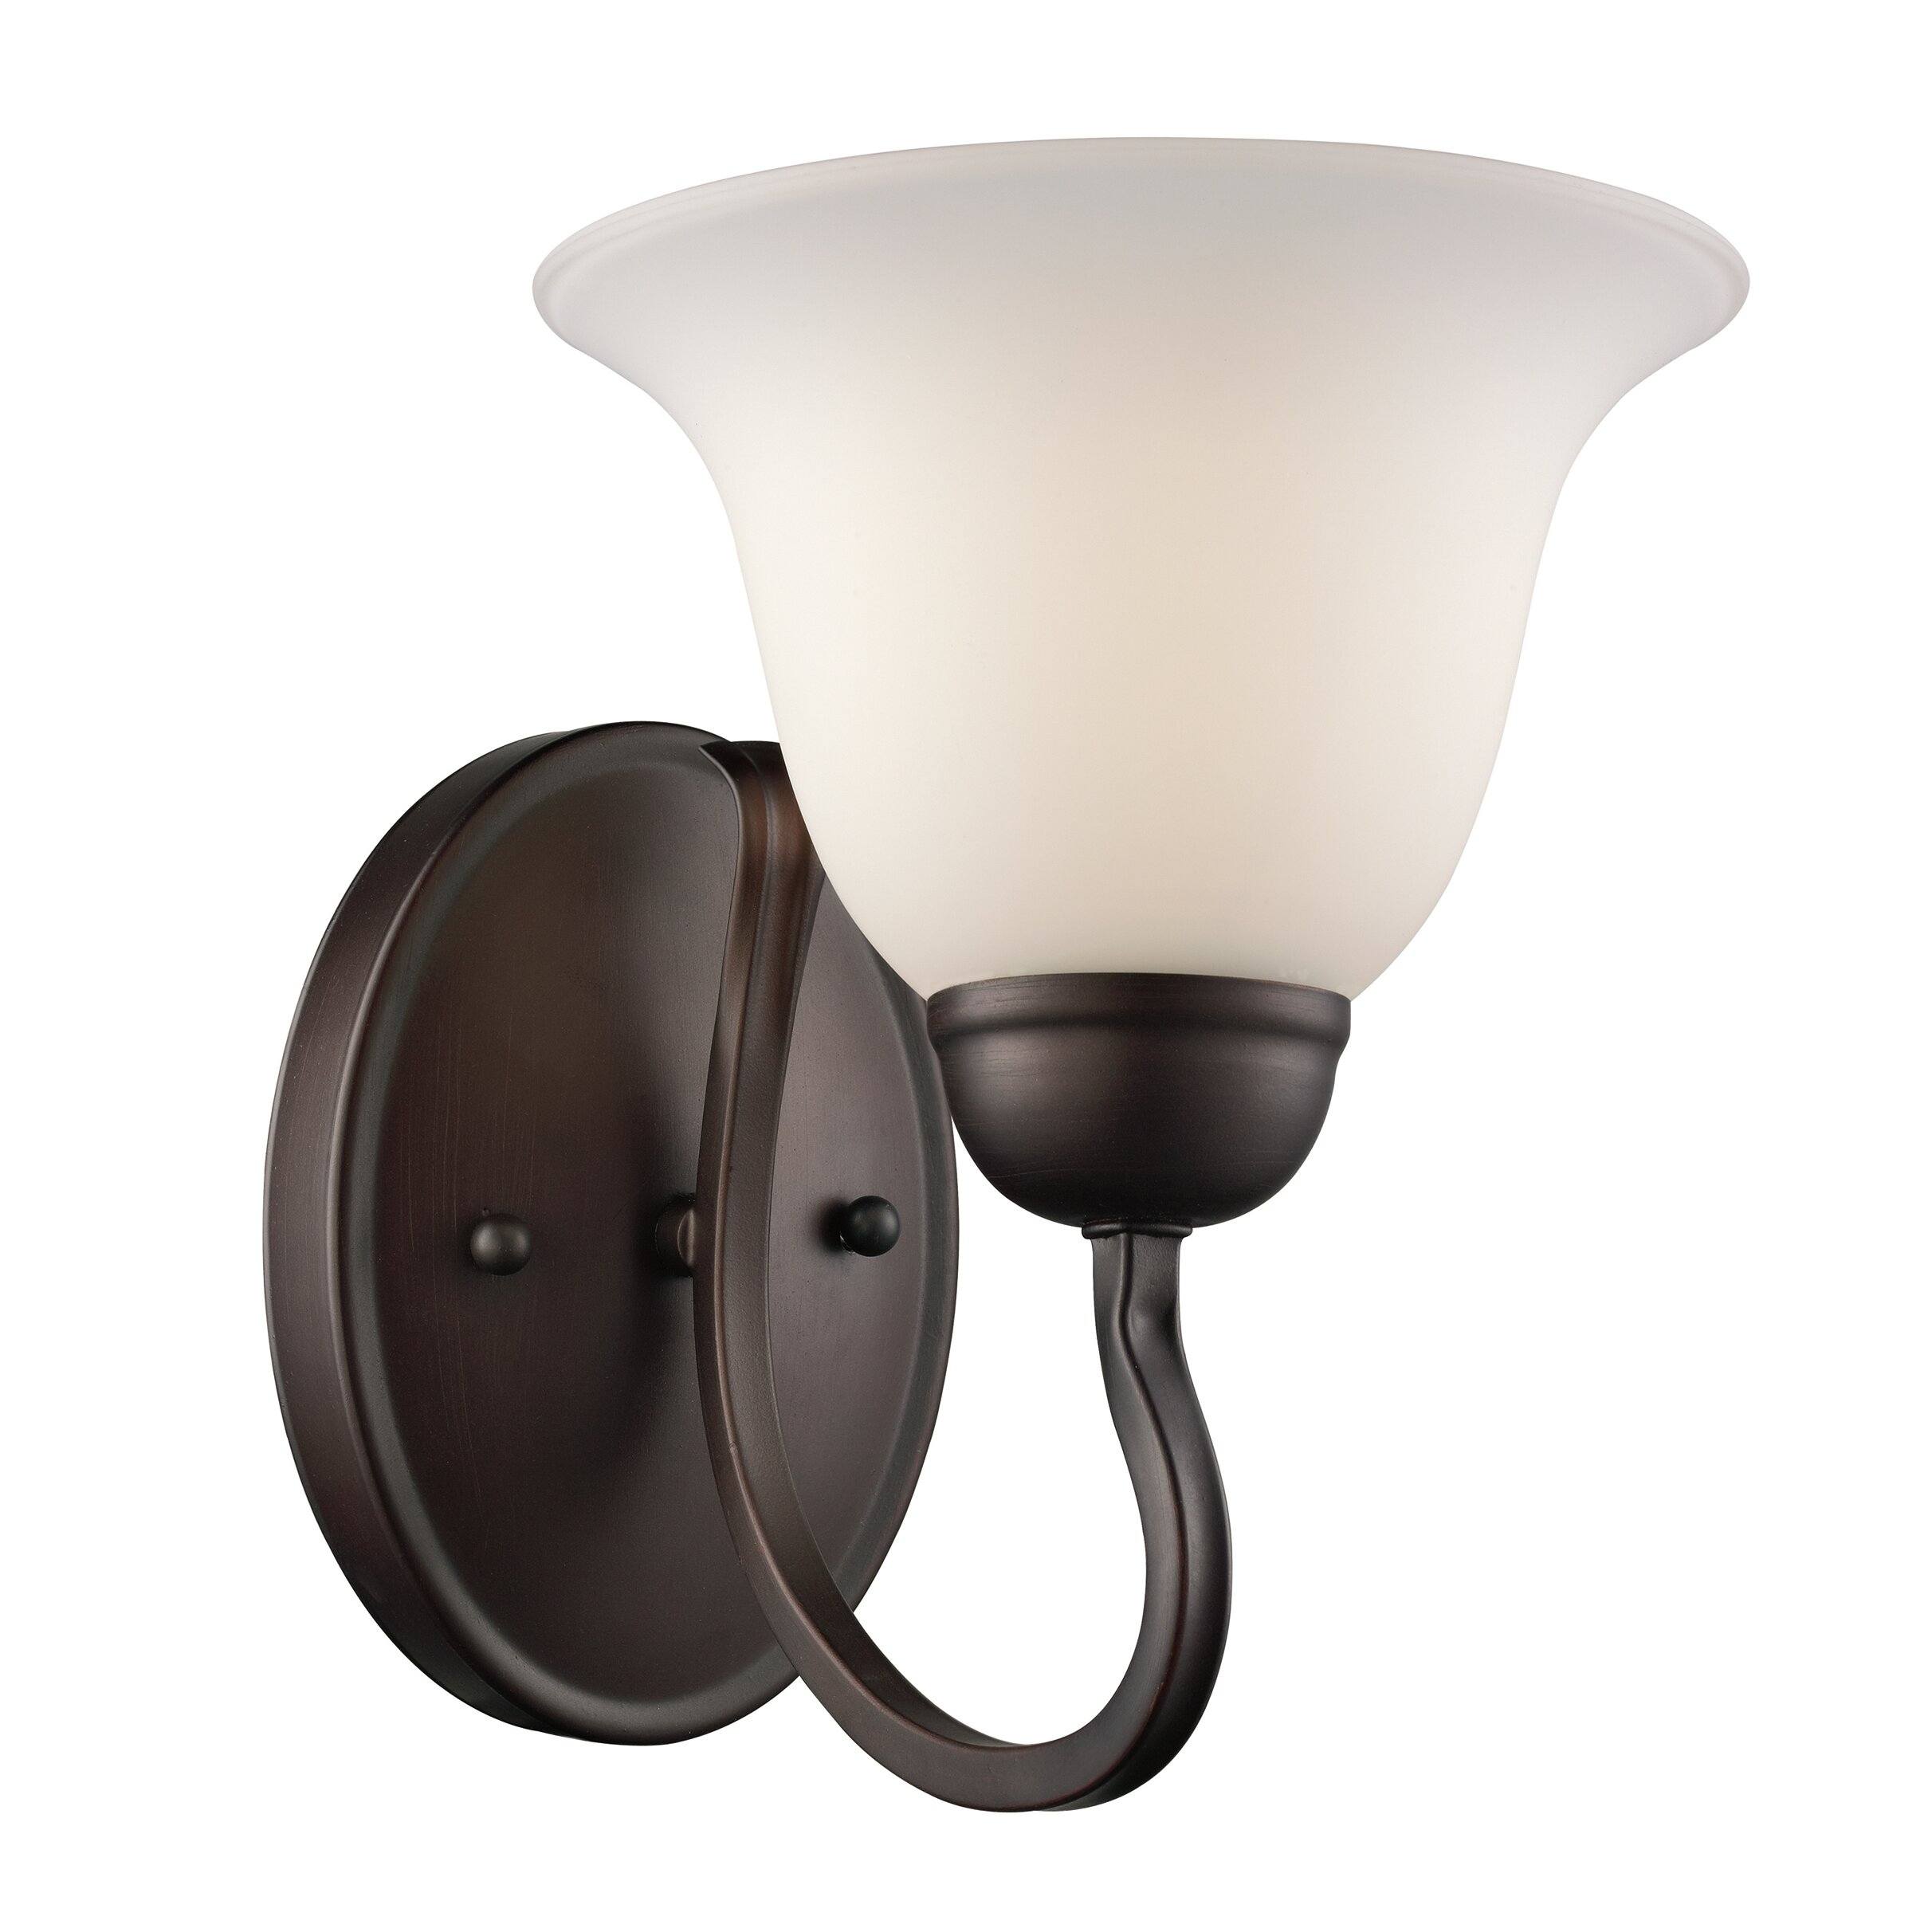 Wall Sconce With Magnifying Glass : Three Posts Burton 1 Light Wall Sconce & Reviews Wayfair